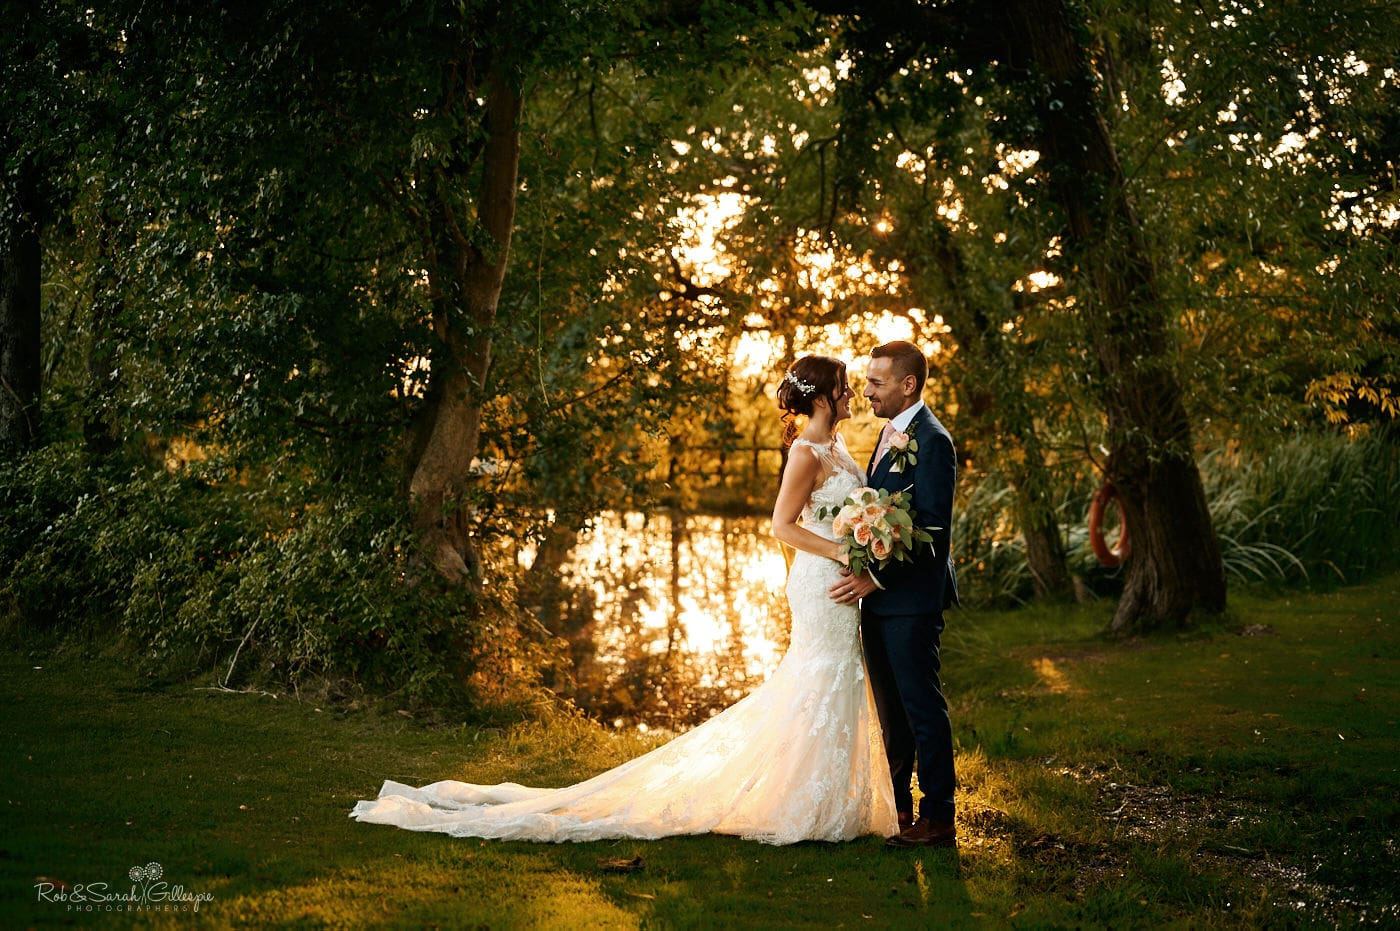 Newly married couple in gardens at Gorcott Hall with sunlit pond in background